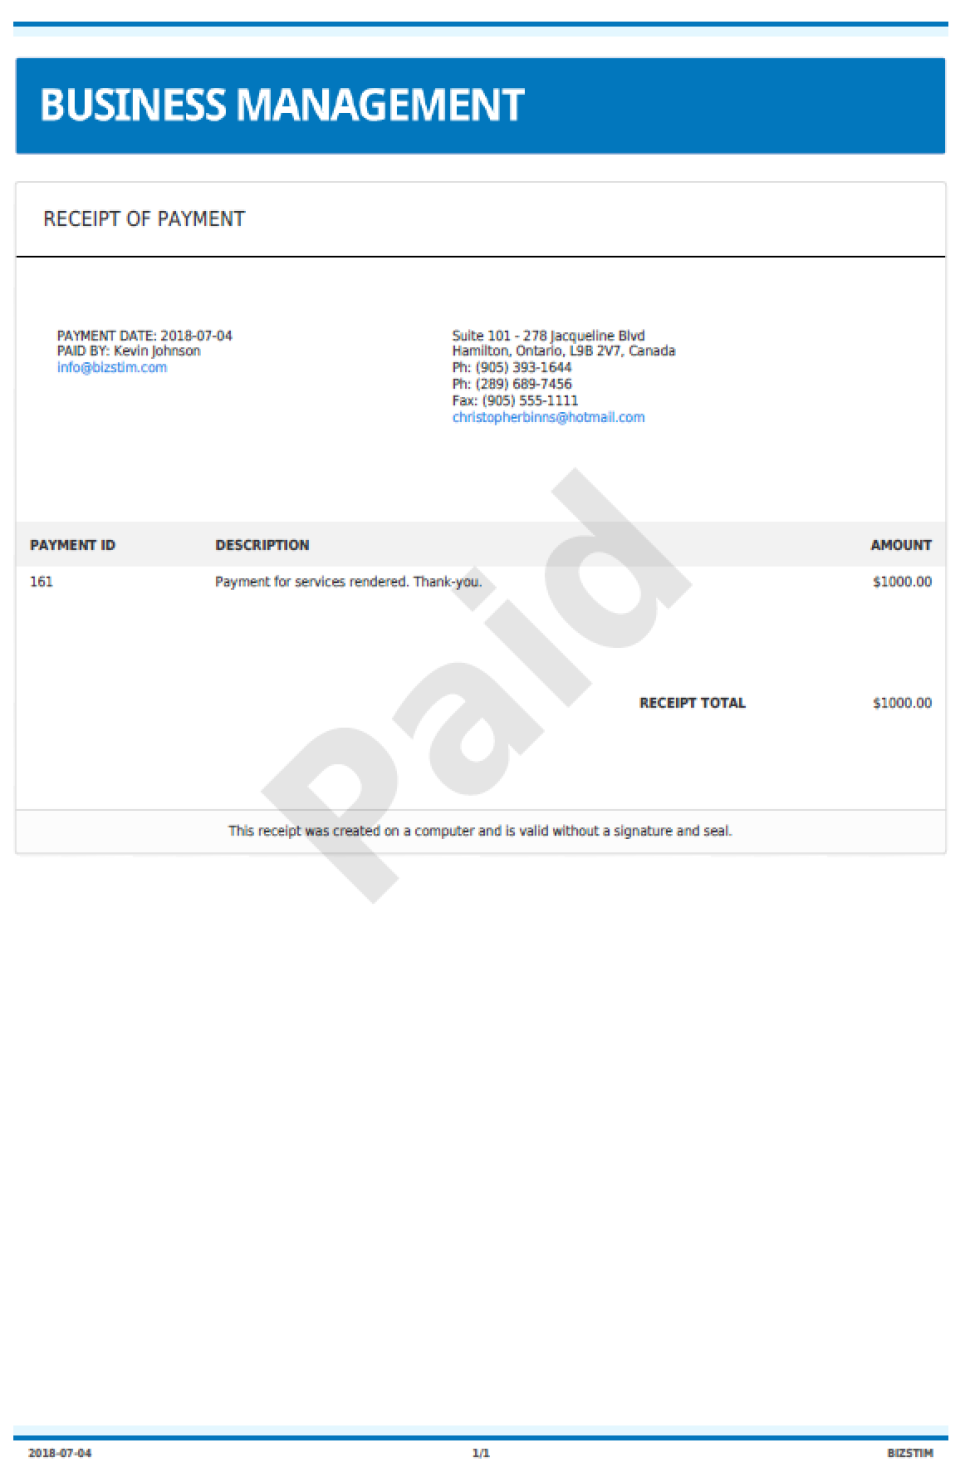 Create receipts and invoices to send to customers, and track whether they are paid or not